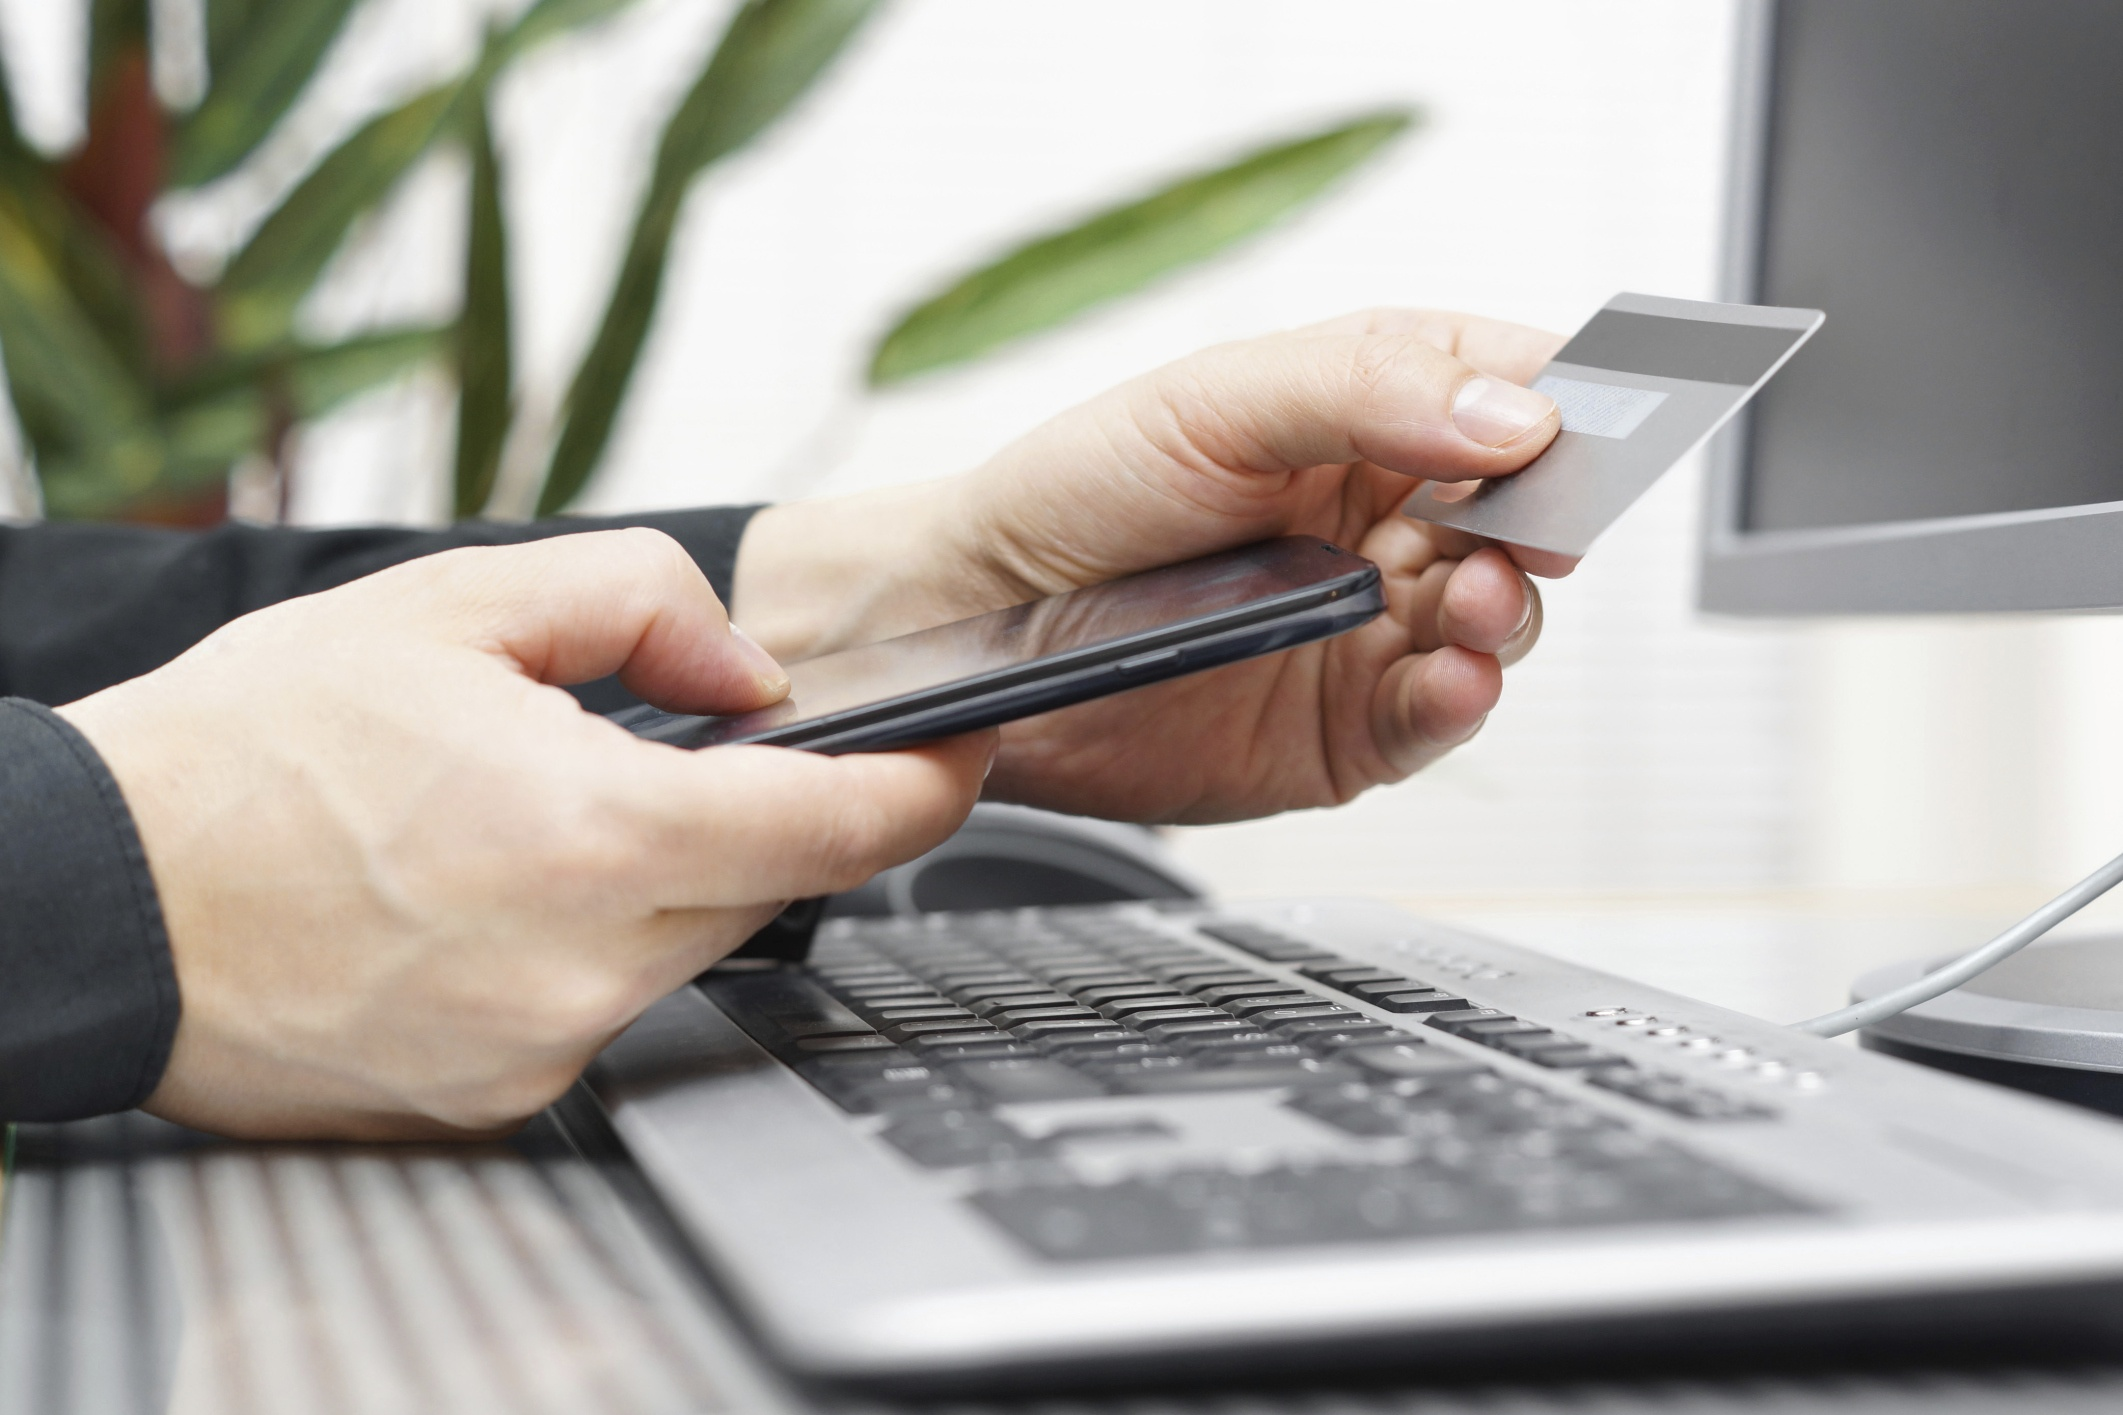 Man_using_a_credit_card_and_mobile_phone_for_payment_2123x1415.jpg